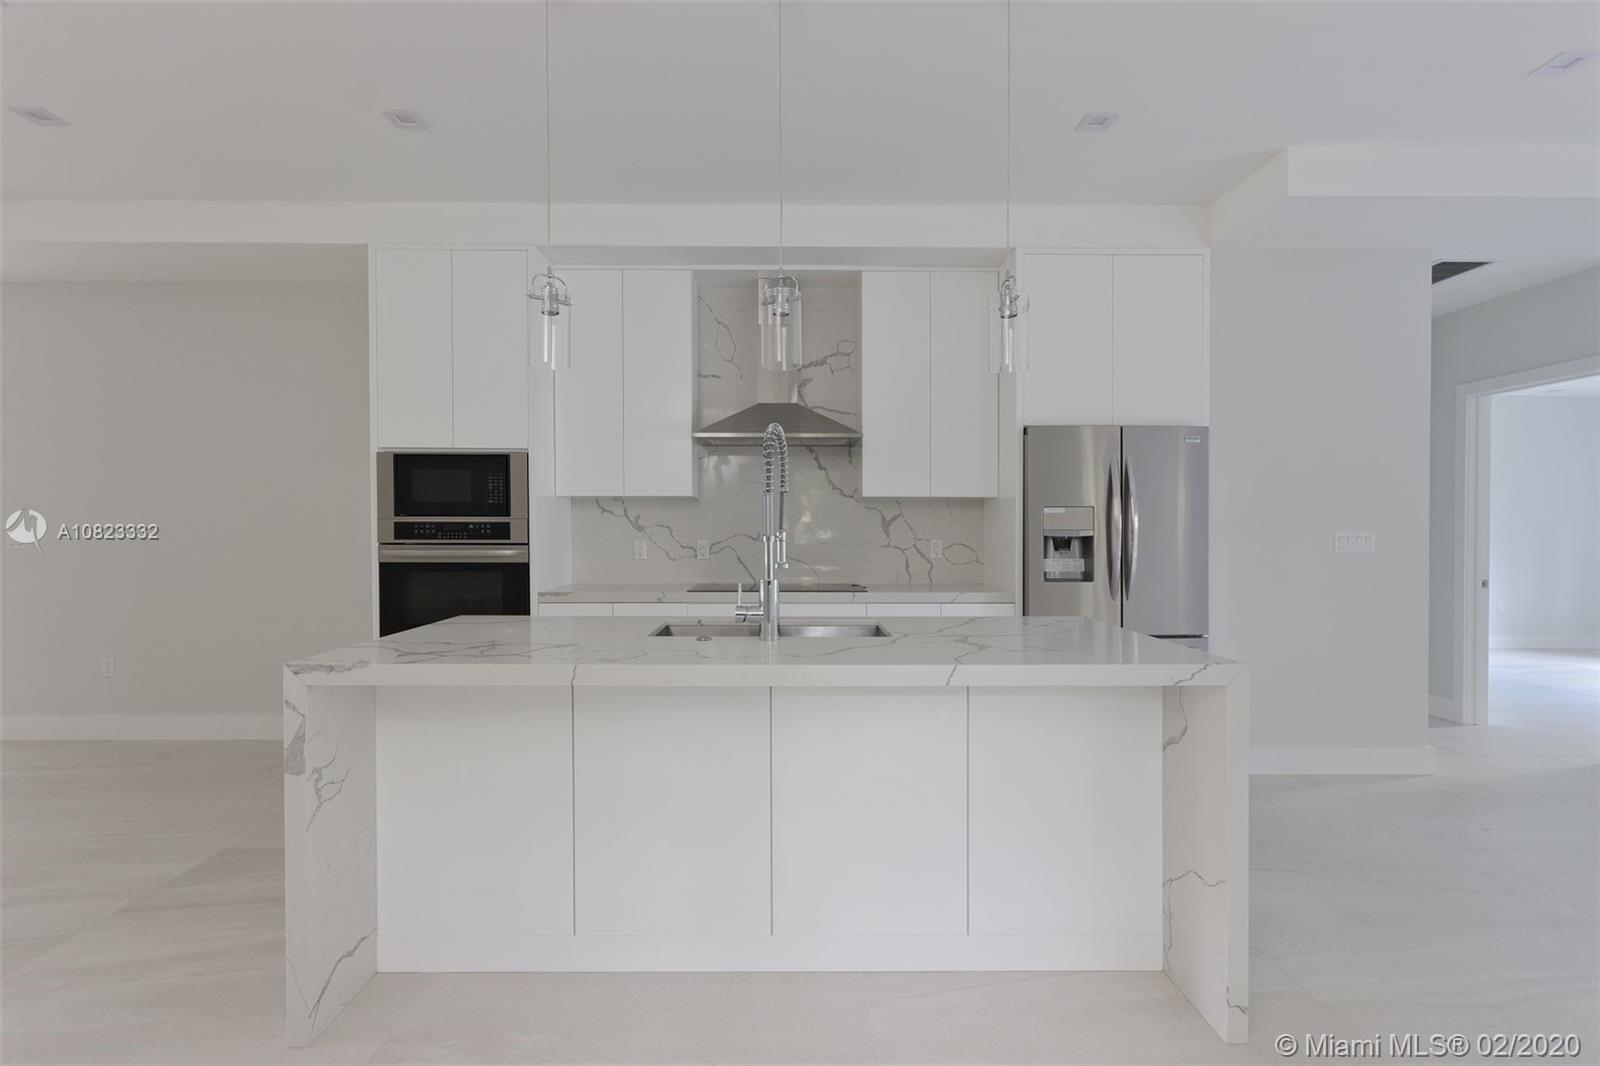 NEW CONSTRUCTION IN 2020.  3 BEDROOMS AND 2 FULL BATHS PLUS ½ BATH IN MIAMI SHORES.  EVERYTHING IS B